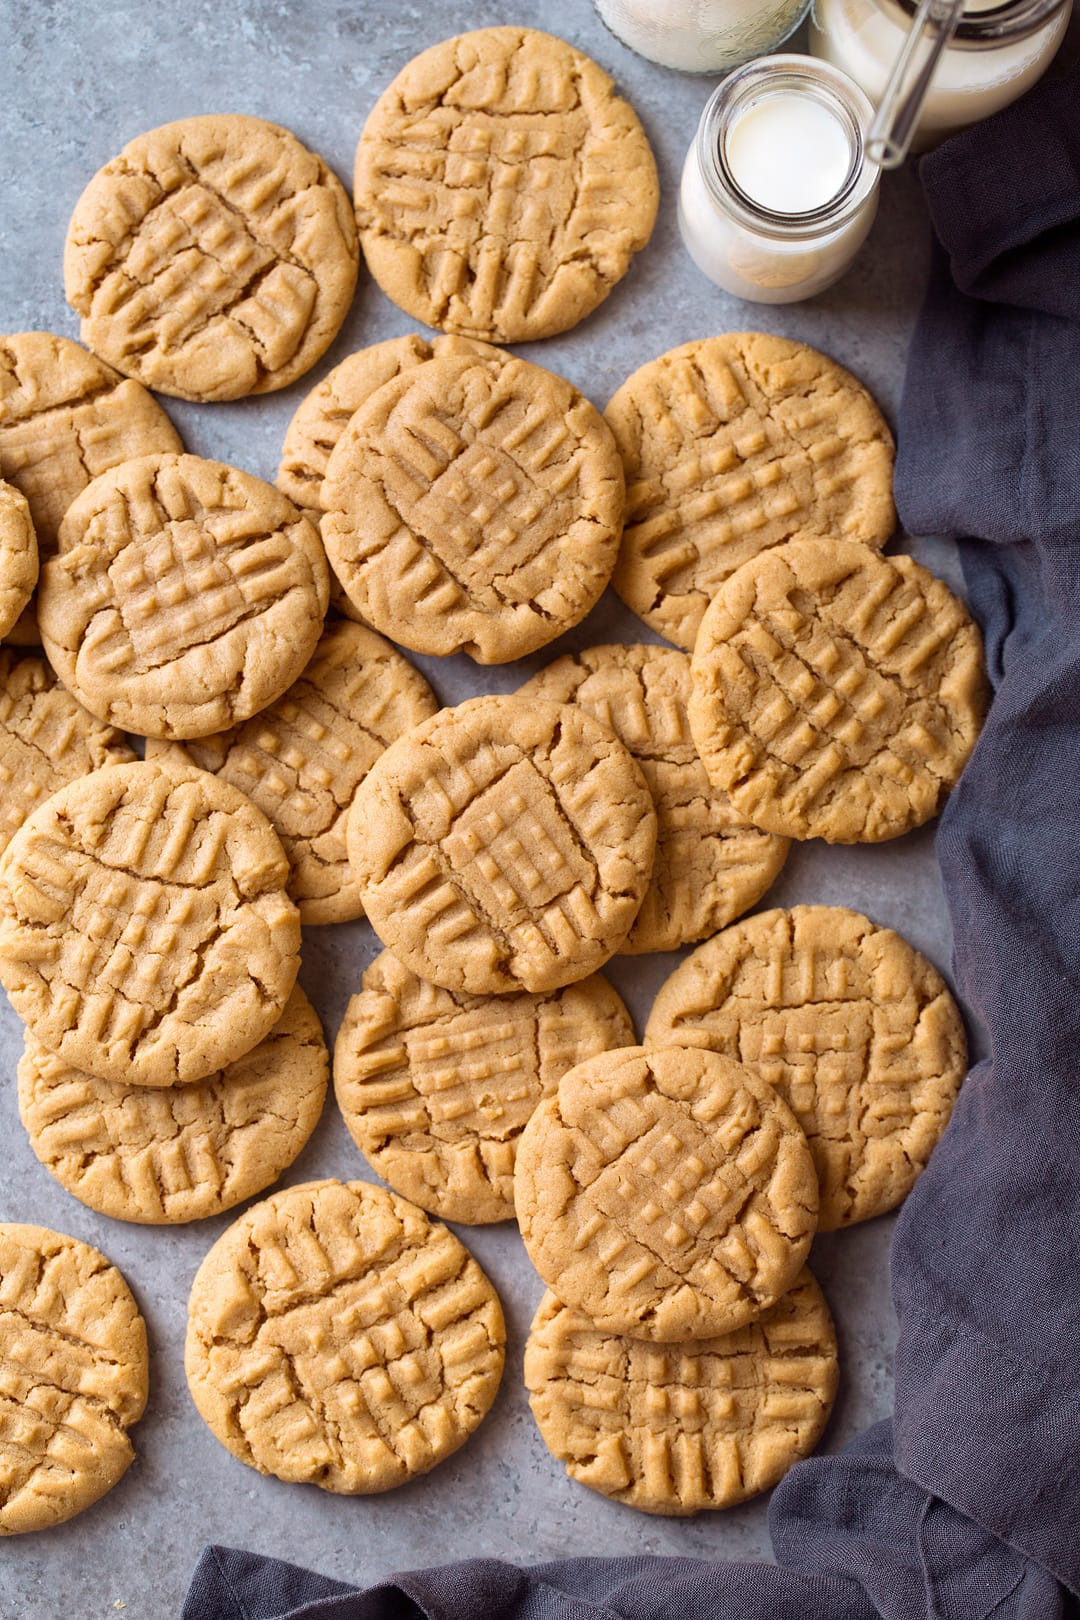 Best Peanut Butter Cookies  Peanut Butter Cookies Best Easy Recipe With Video